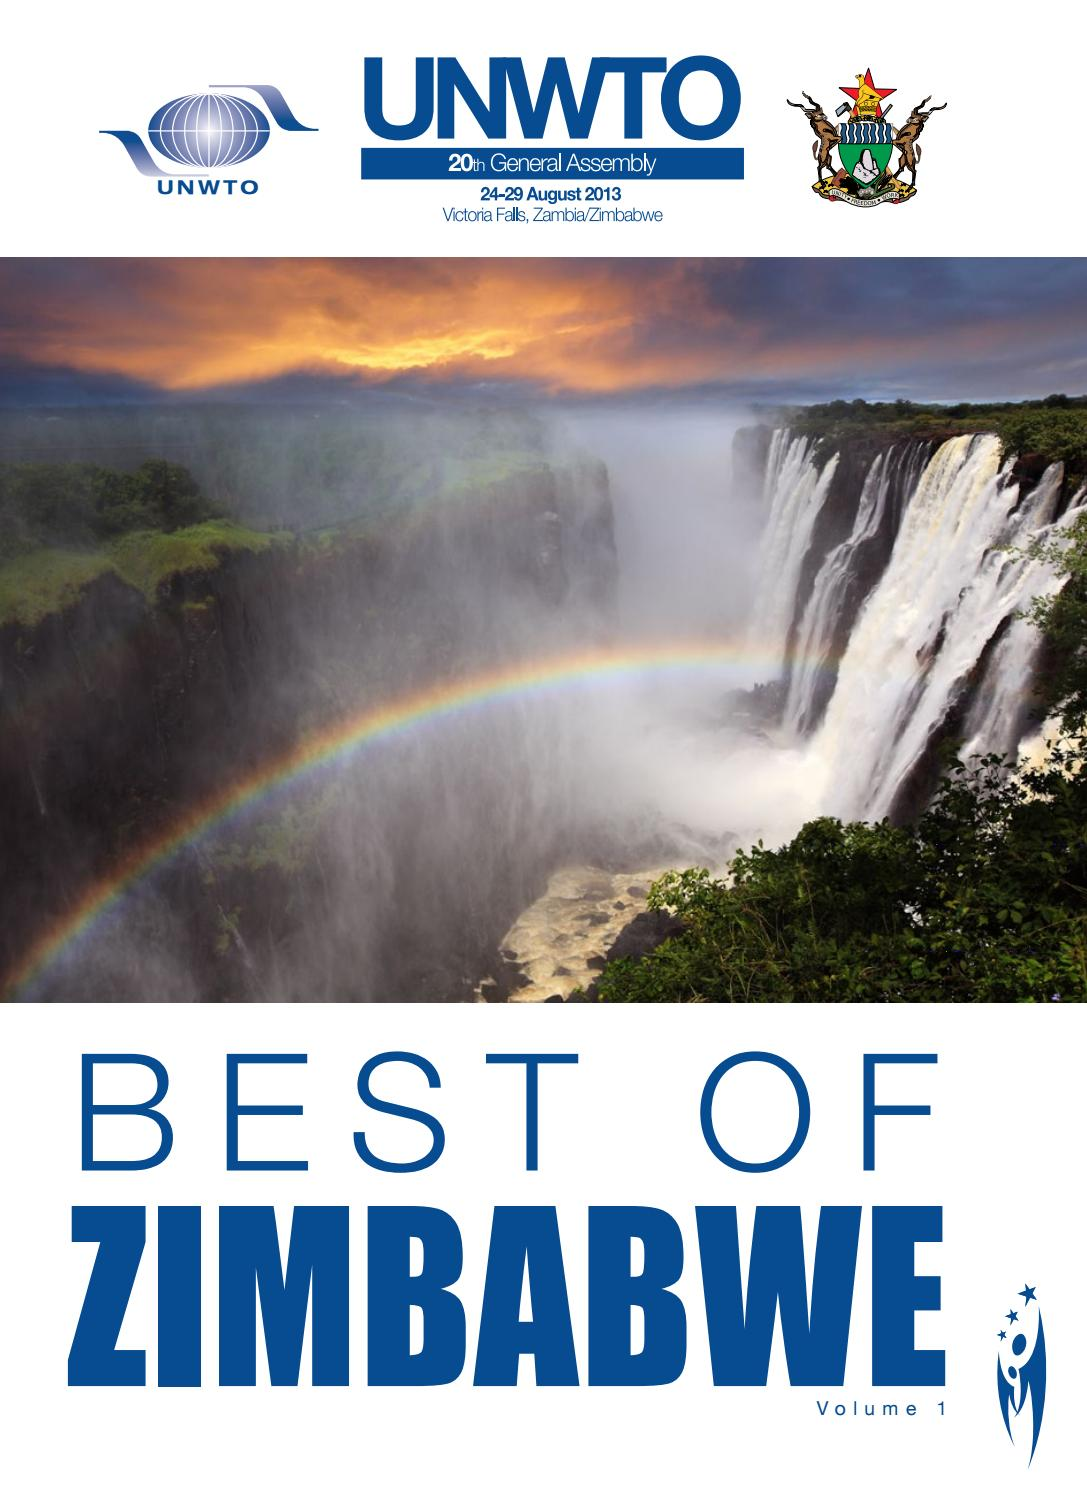 Best Of The Best 2017 By Colorado Community Media: Best Of Zimbabwe Vol.01 UNWTO By Sven Boermeester